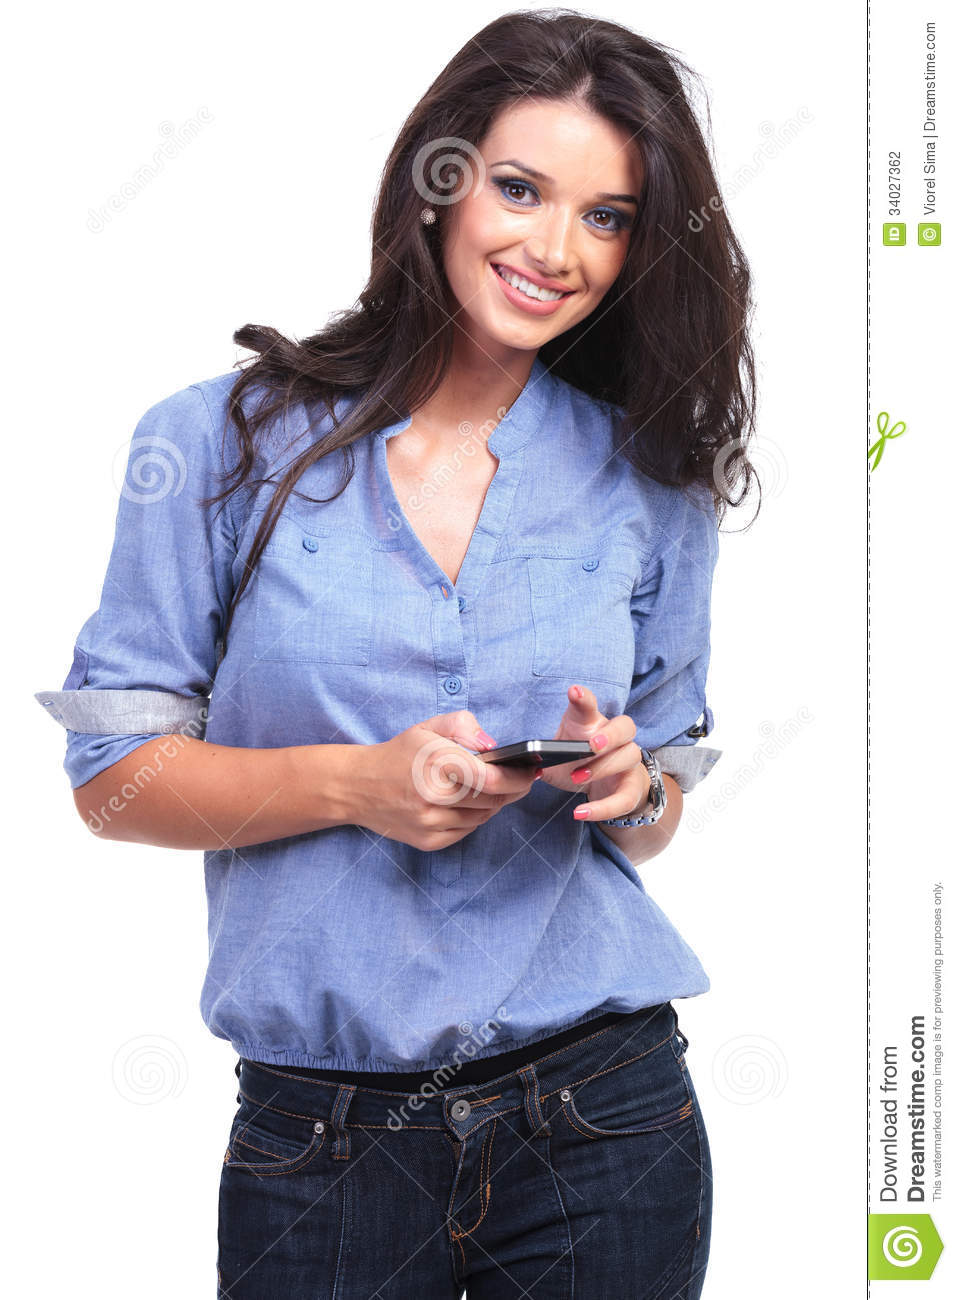 Casual woman with a phone in her hand